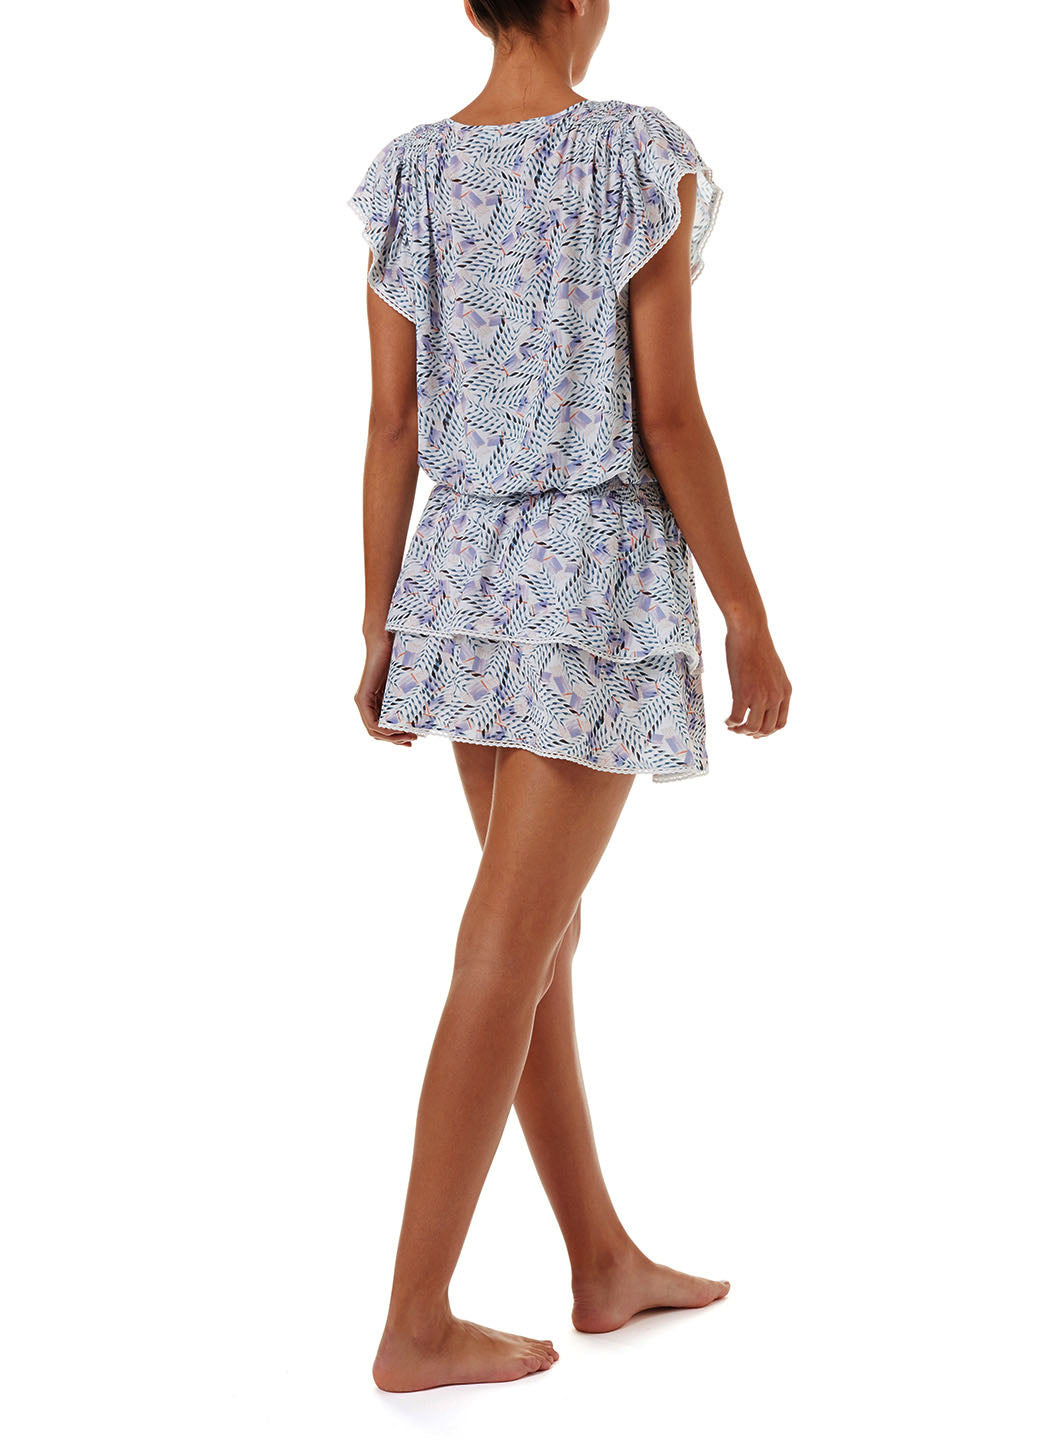 Keri Azari Short Frill Beach Dress